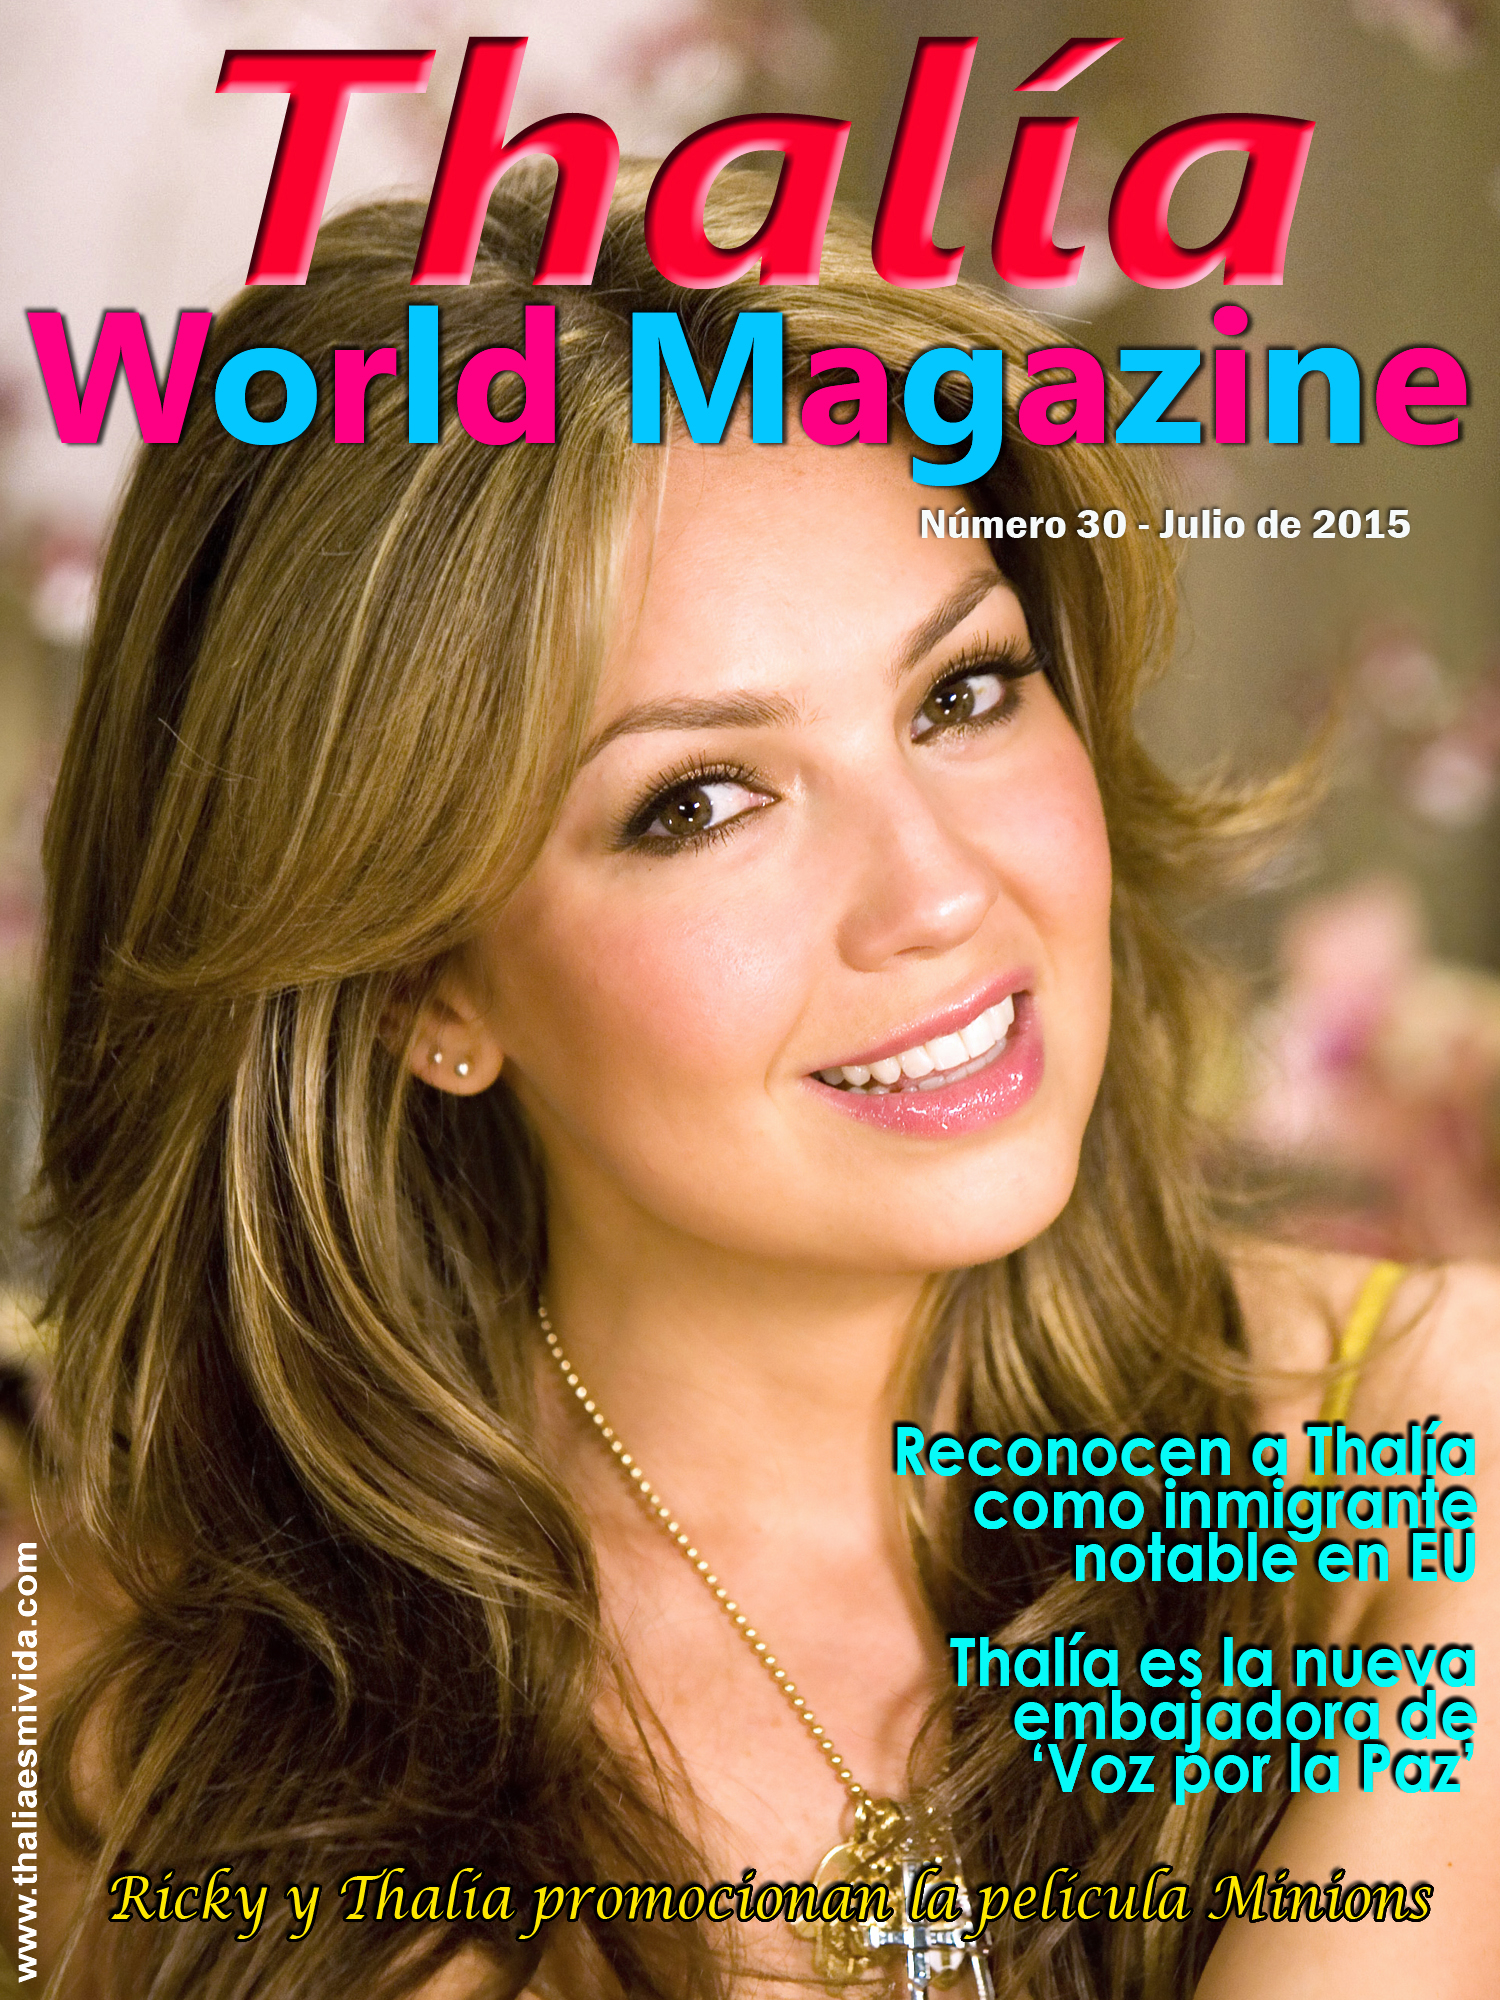 Thalia World Magazine 30